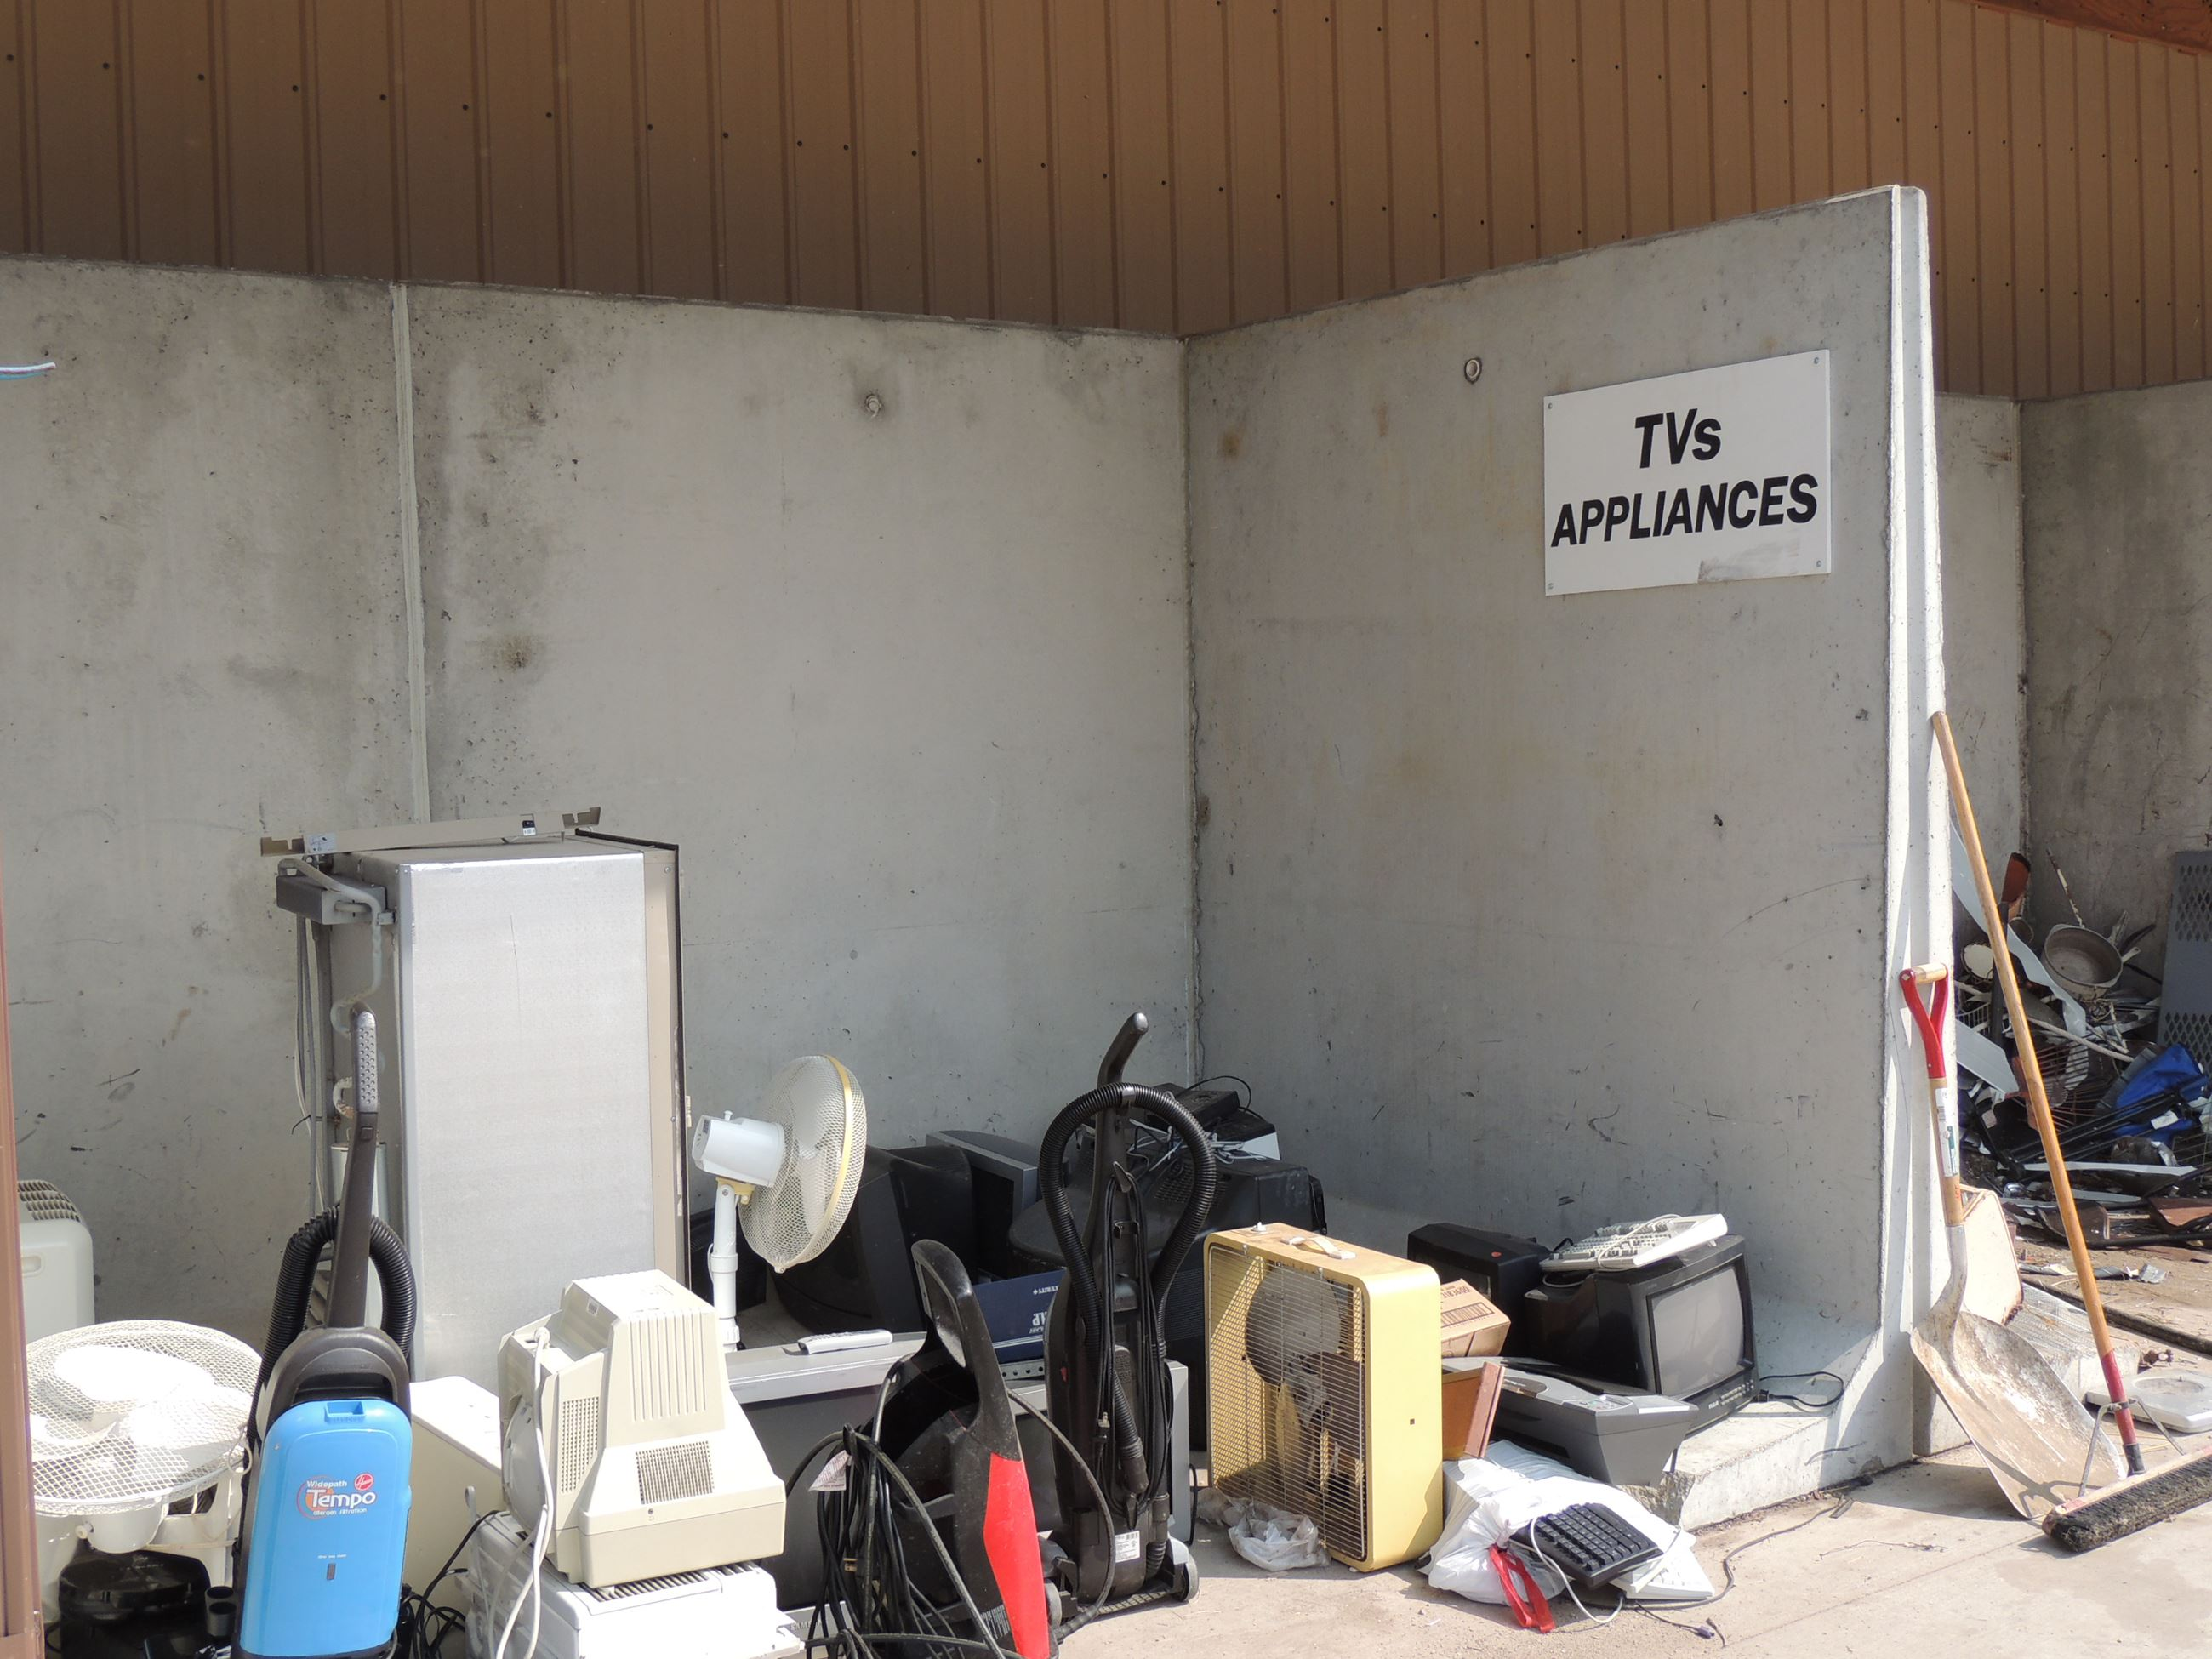 TVs and Appliances Drop-Off Area